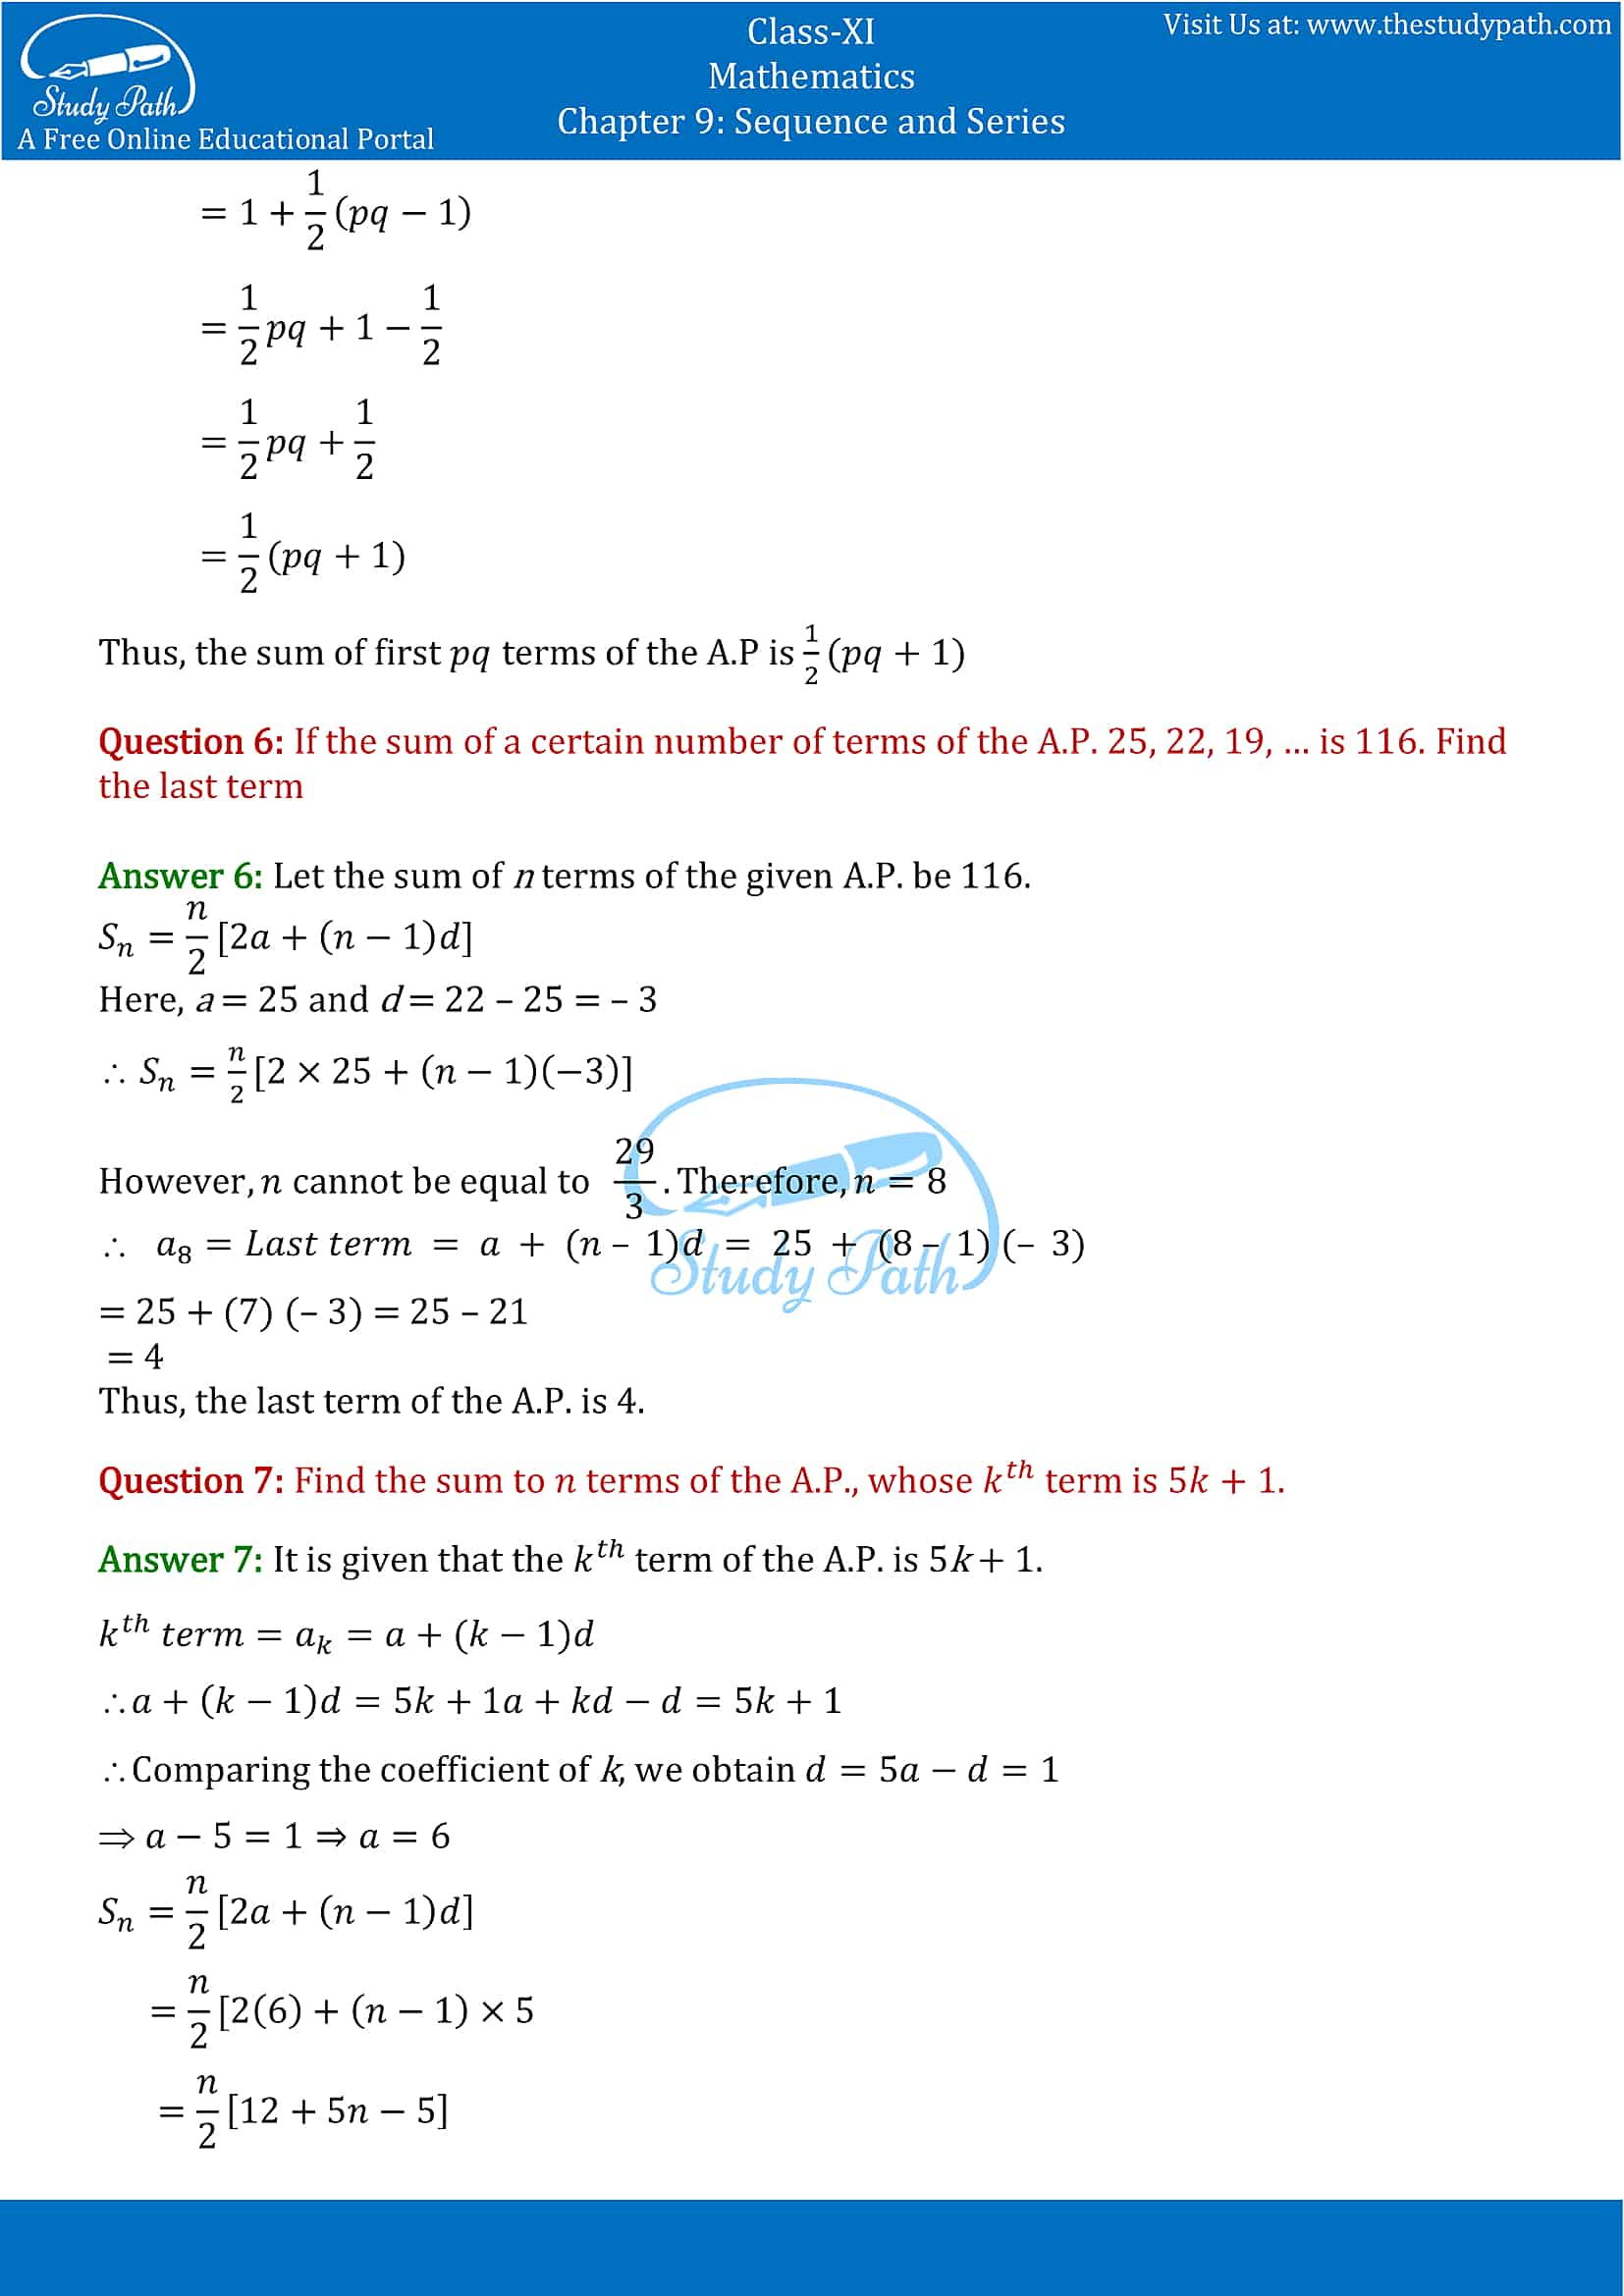 NCERT Solutions for Class 11 Maths chapter 9 Sequence and Series Exercise 9.2 Part-4